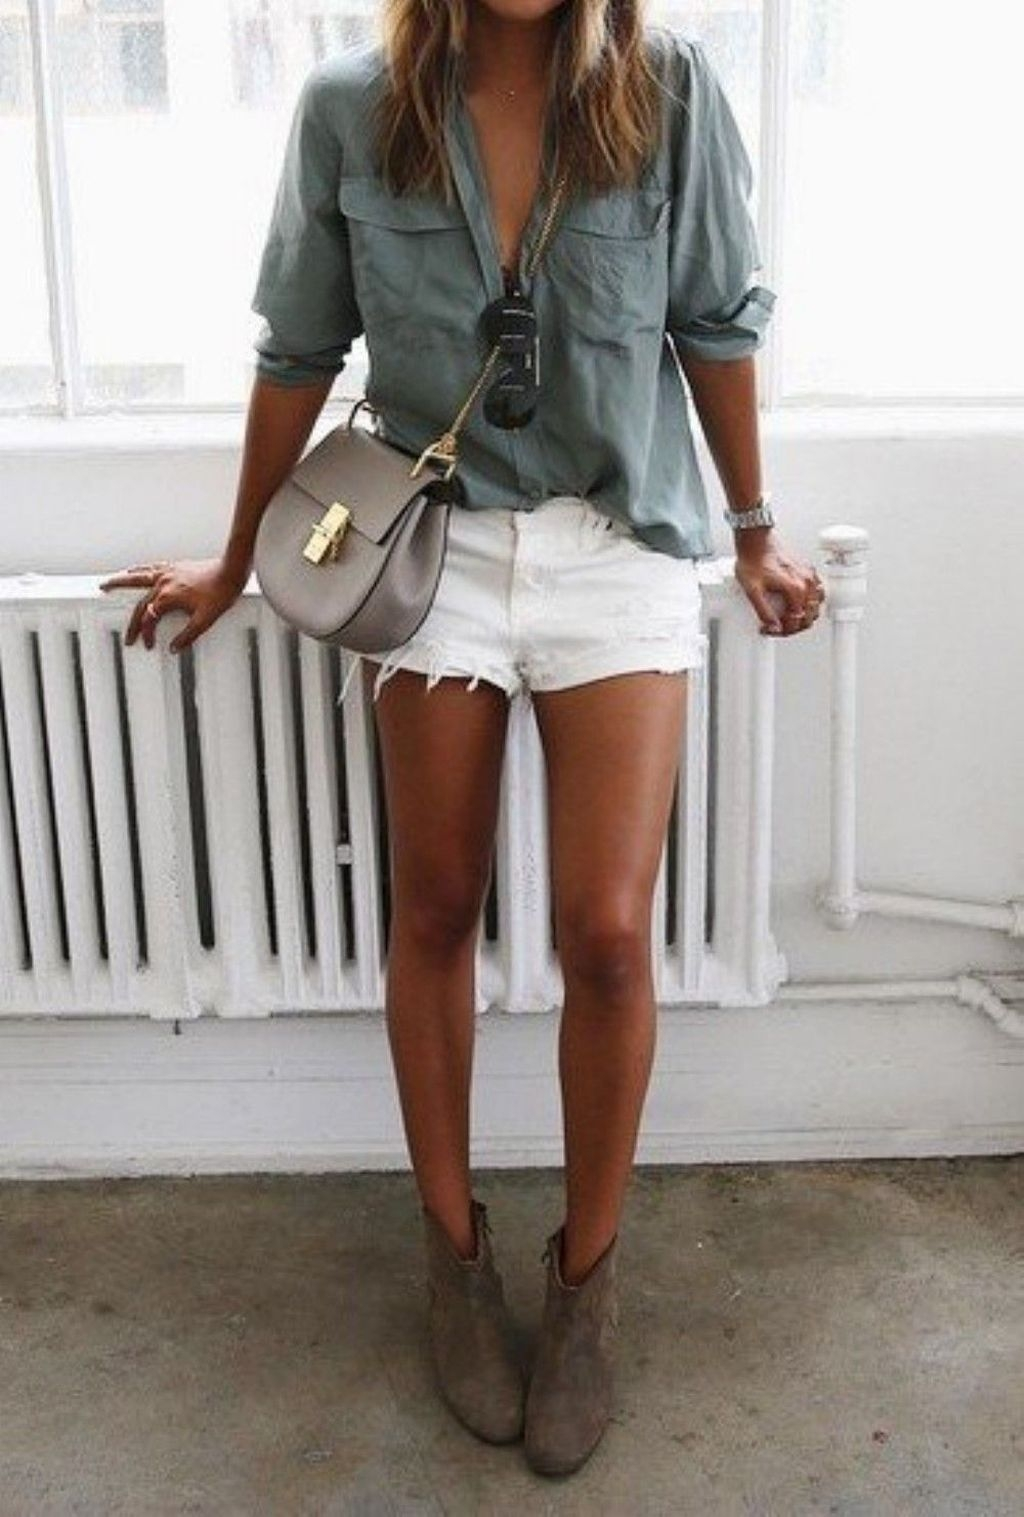 15fabb9af68 41 Awesome Summer Outfit Ideas You Will Totally Love - ADDICFASHION